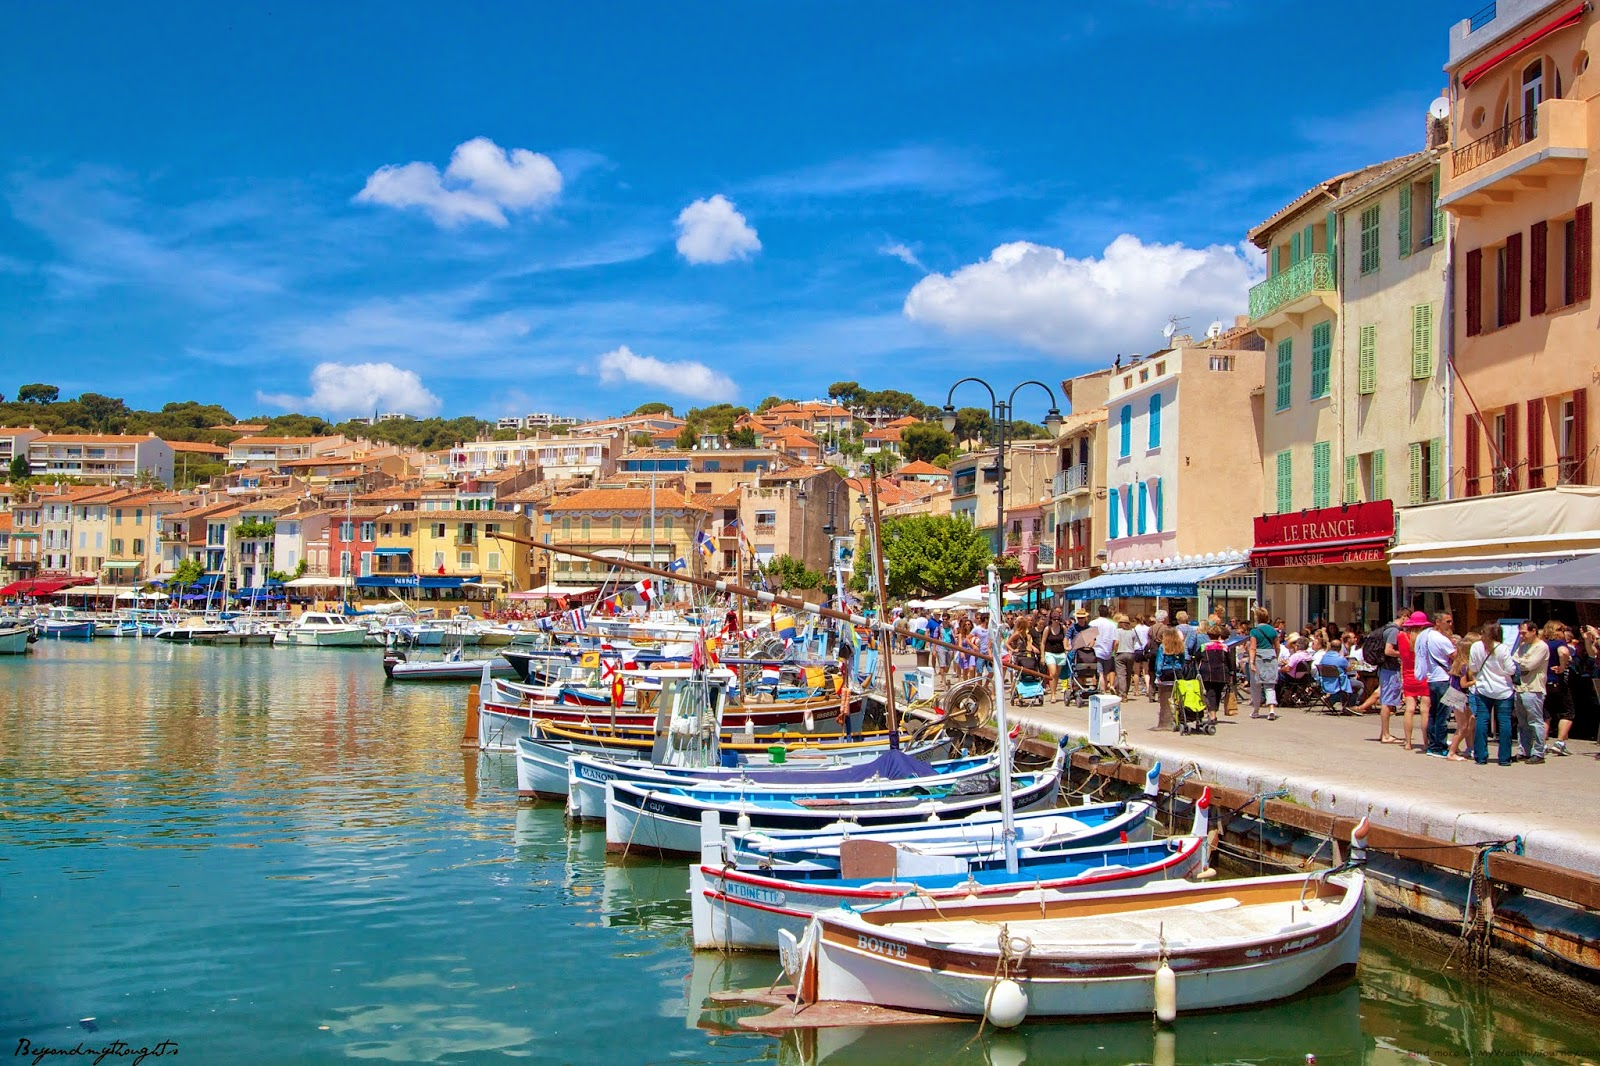 One of my top five destinations in my wanderlust bucket list? Cassis, France.